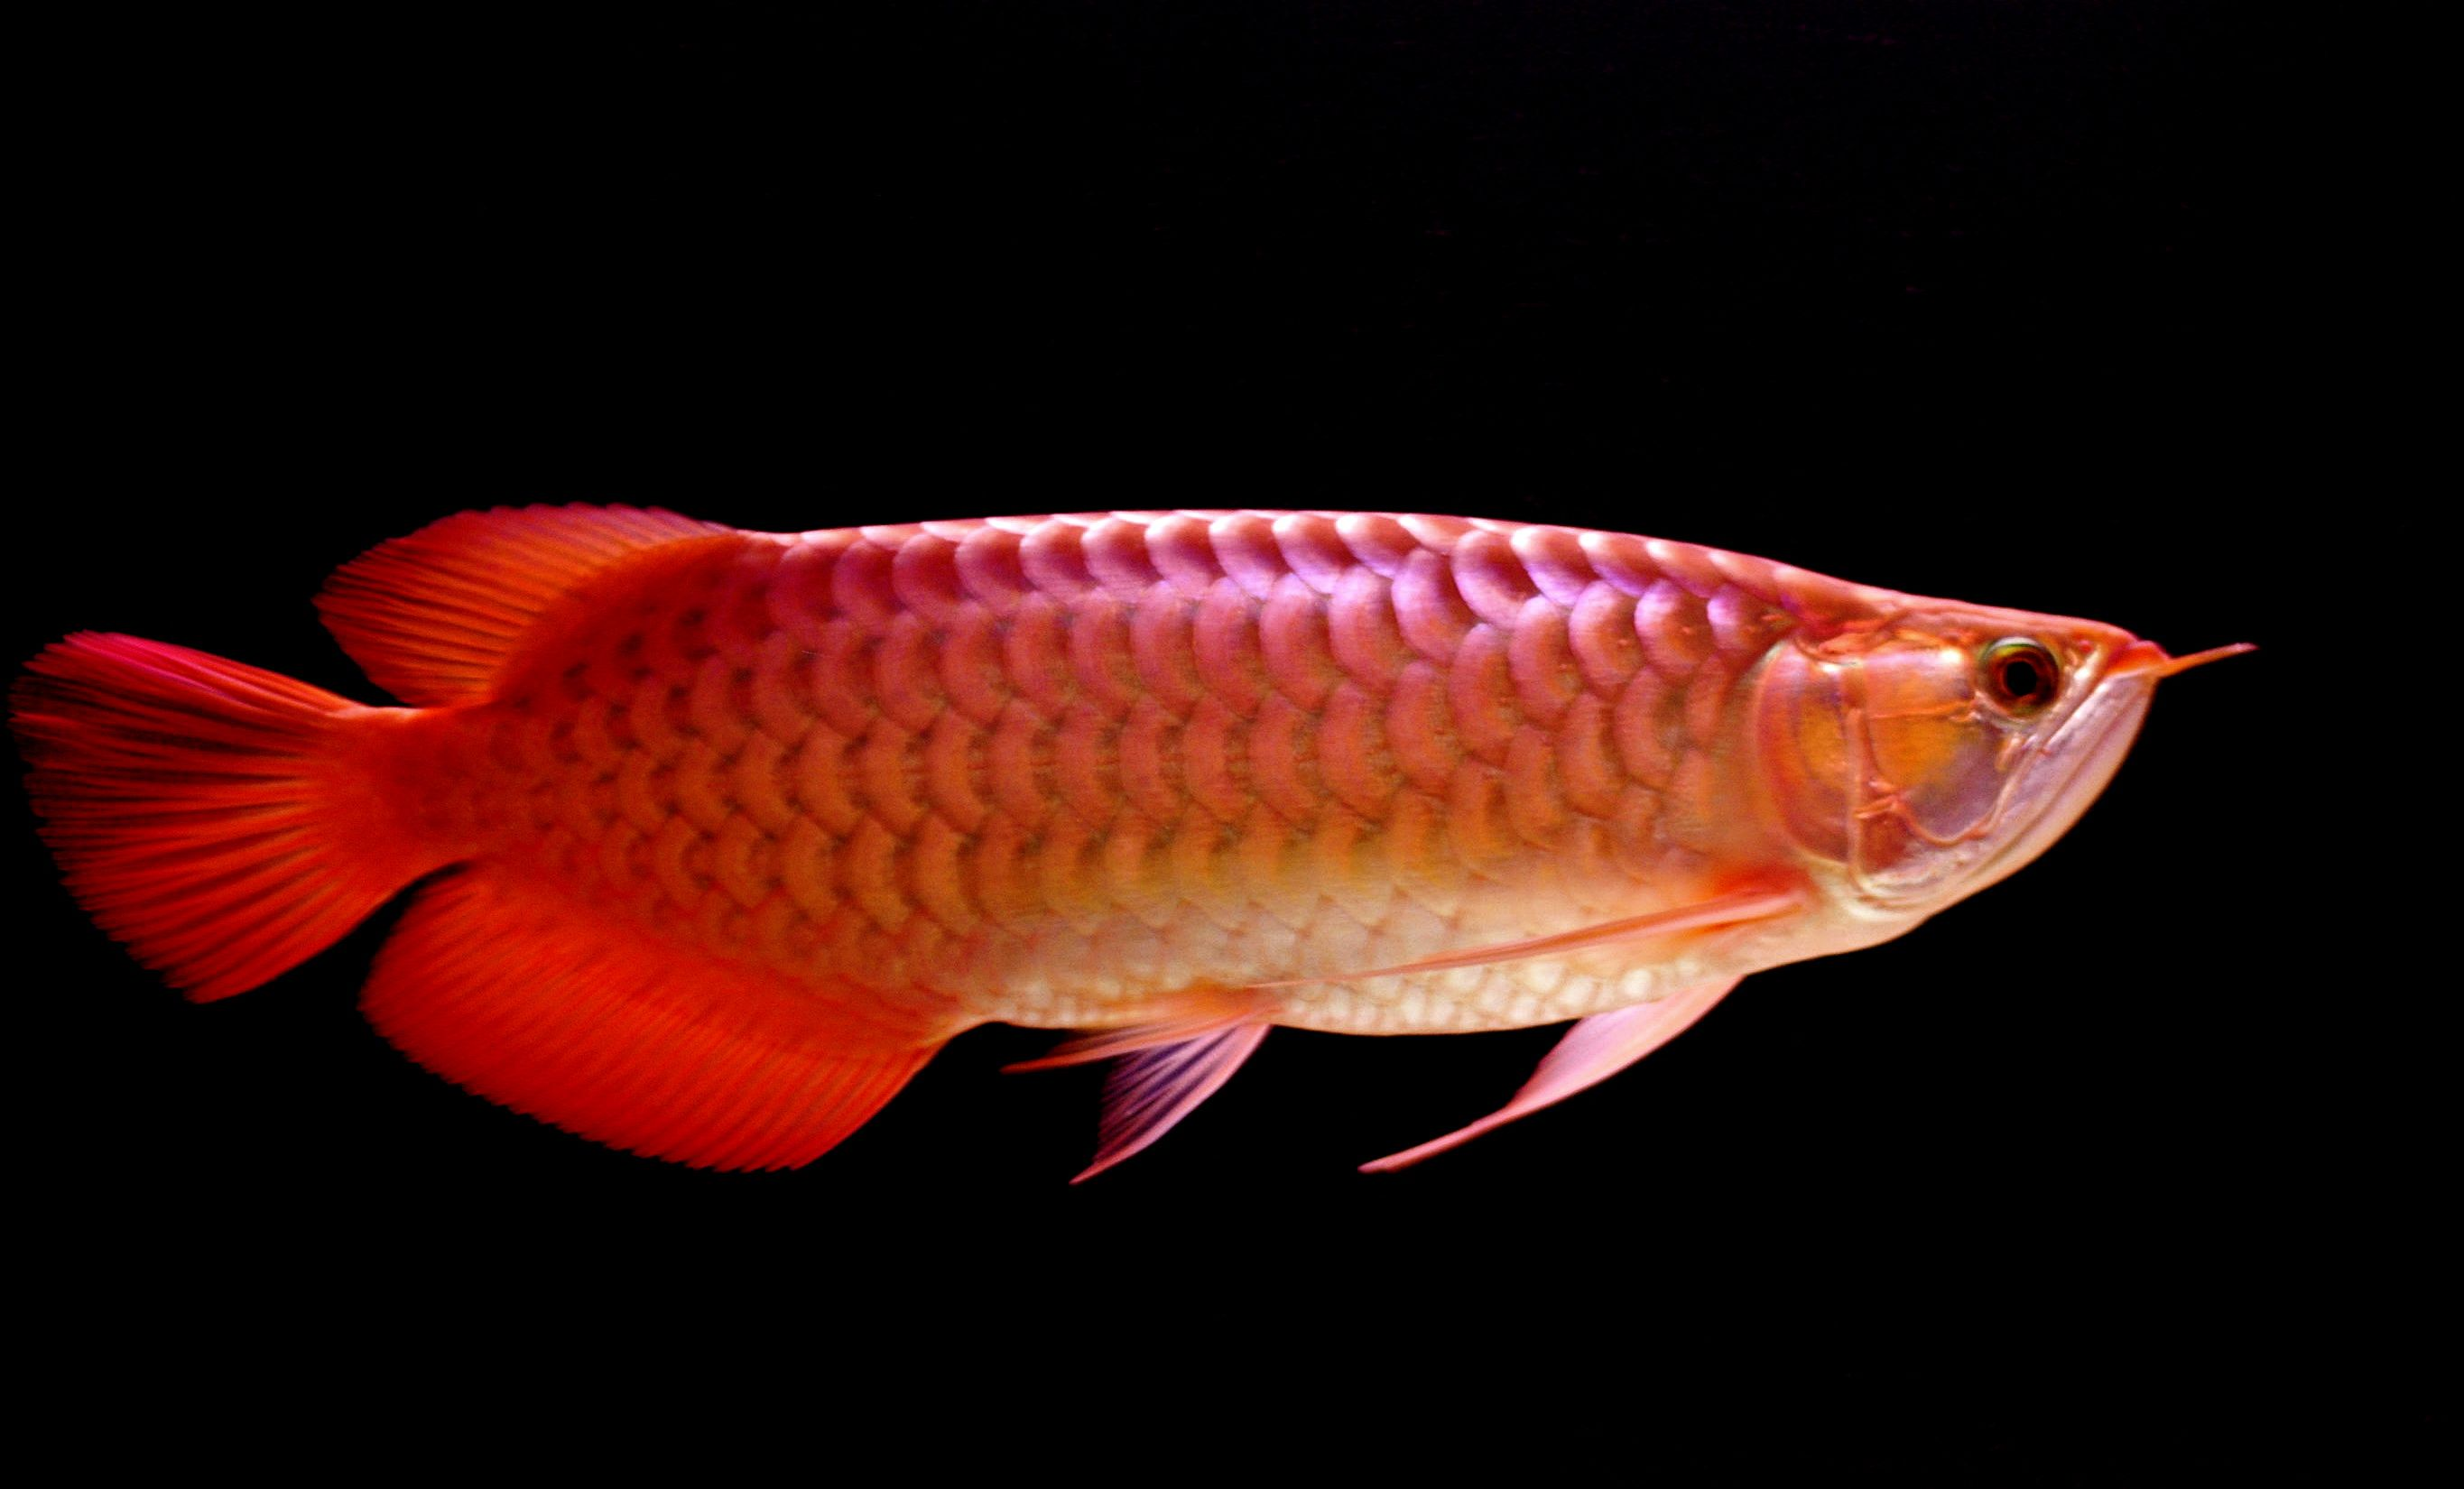 Beautiful Big Red Arowana Fish Picture HD Desktop Free